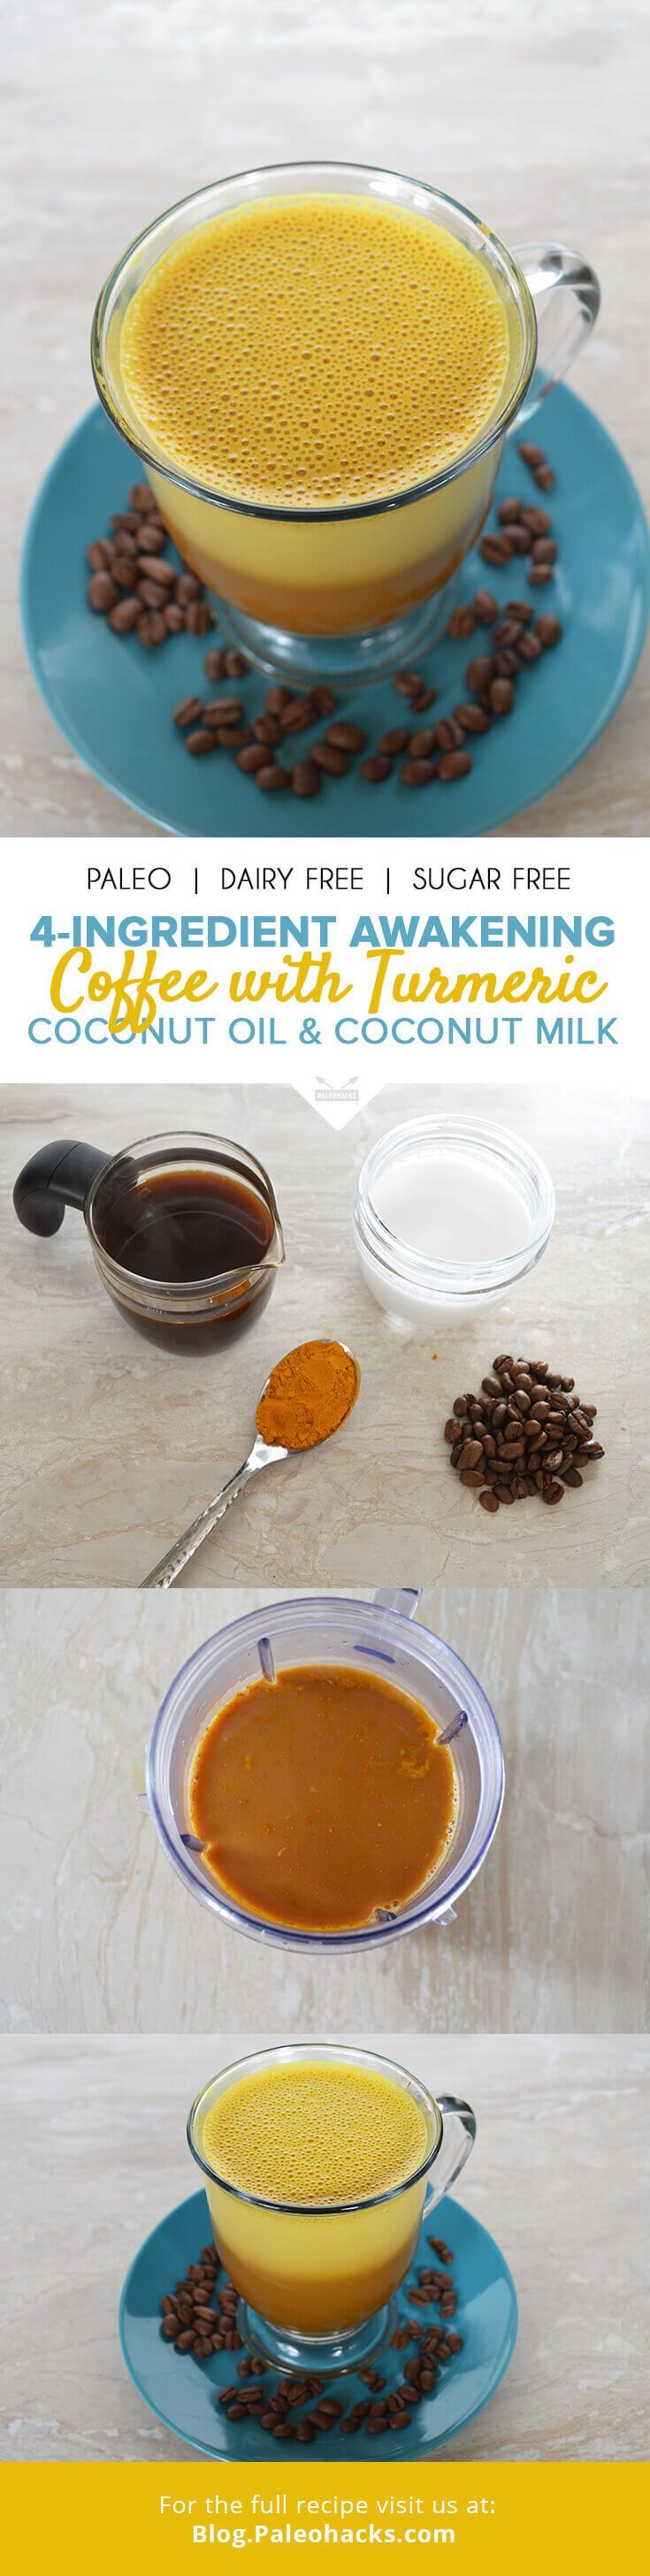 This coffee boasts coconut oil, turmeric and coconut milk to energize you for the day ahead! Get the recipe here: http://paleo.co/awakeningcoffee